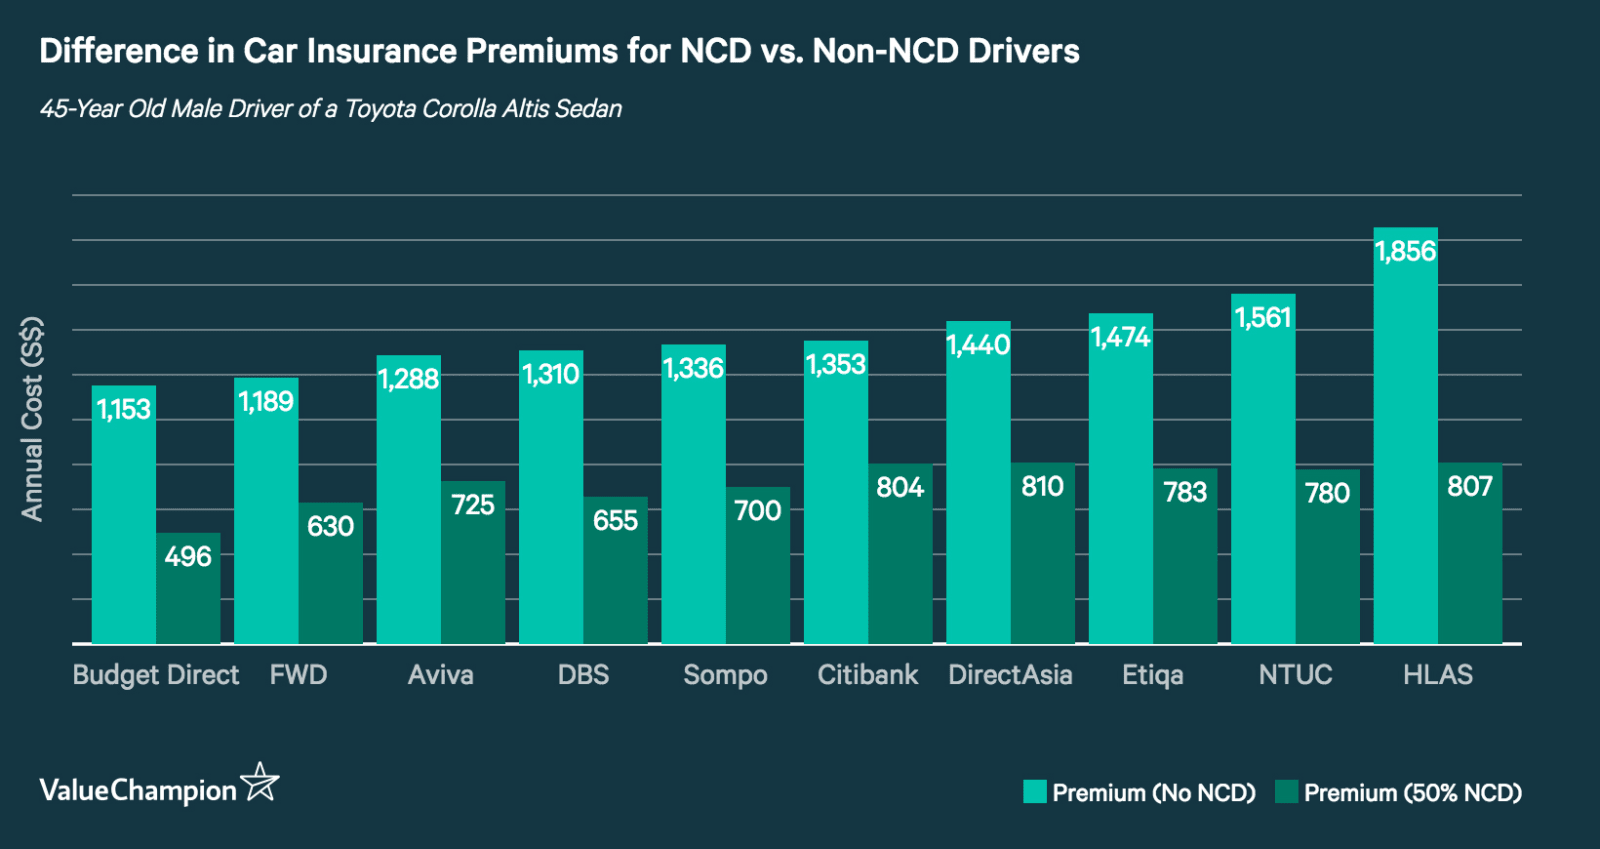 This graph shows the difference in premiums for drivers who hold no NCD compared to drivers who have a 50% NCD